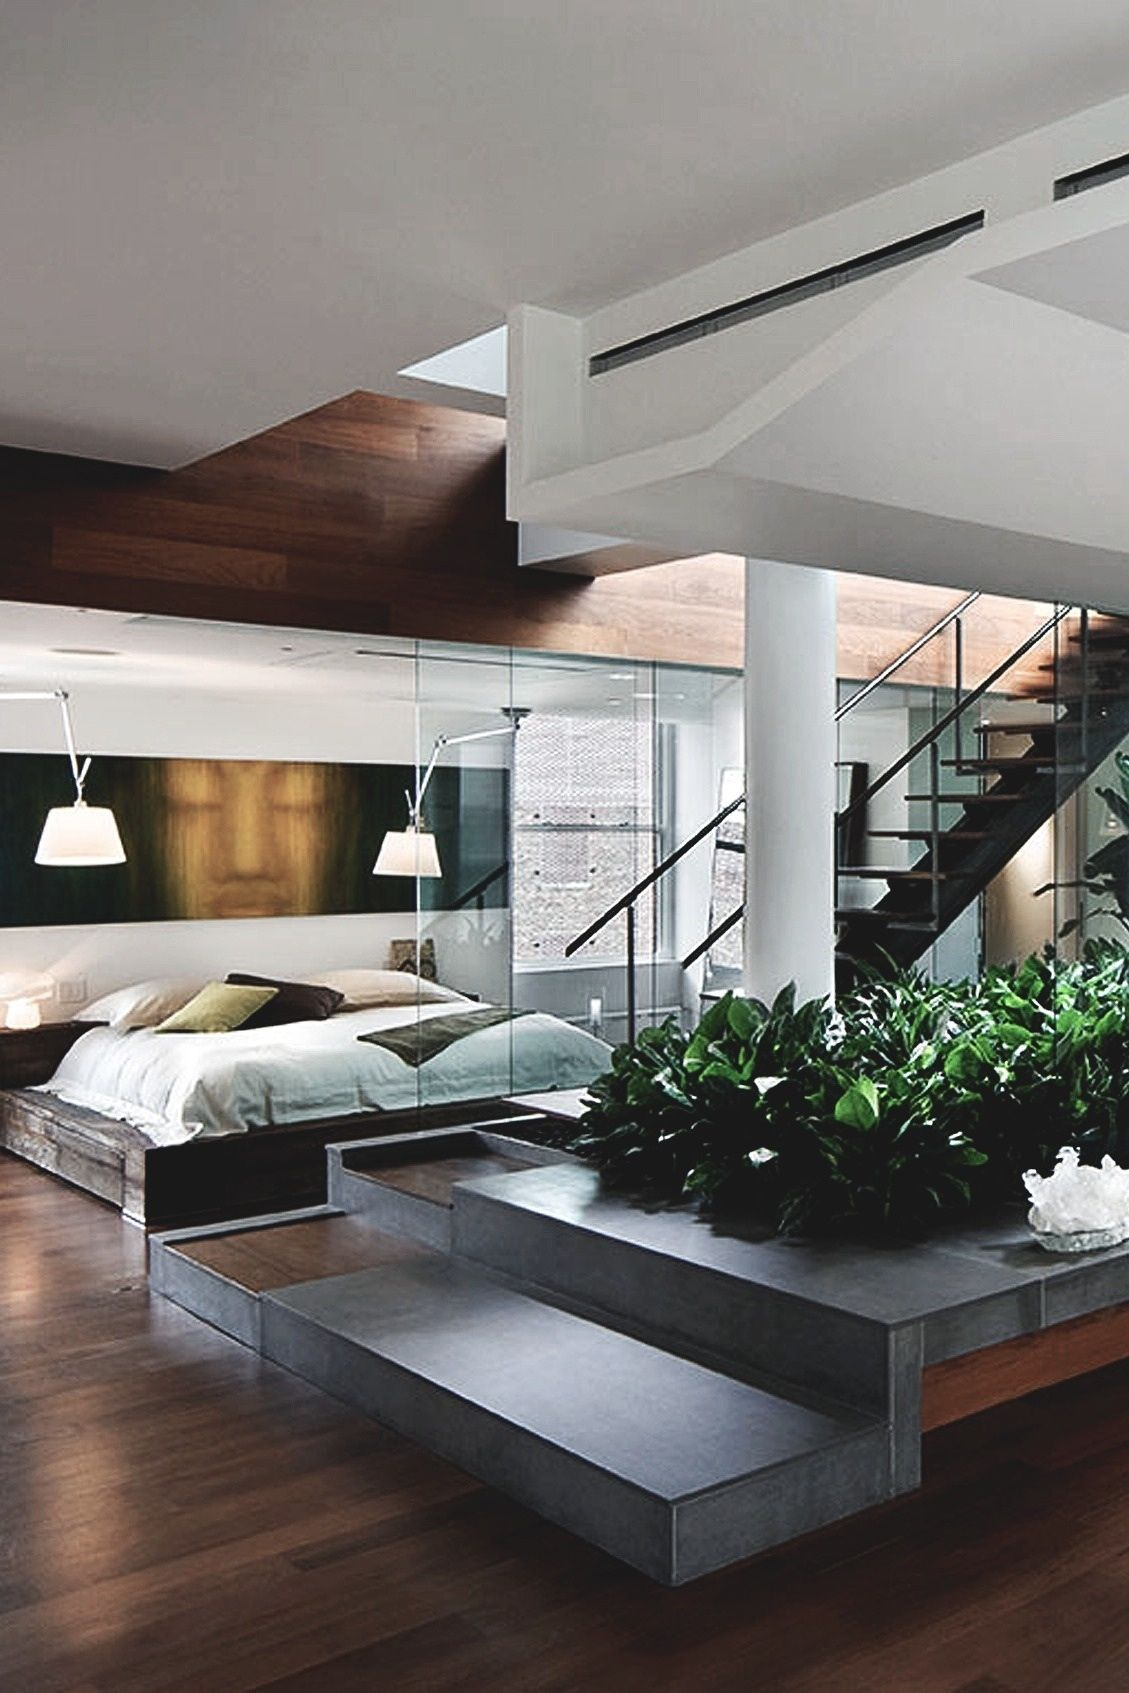 Why I Design. House DesignApartment Interior DesignModern ...